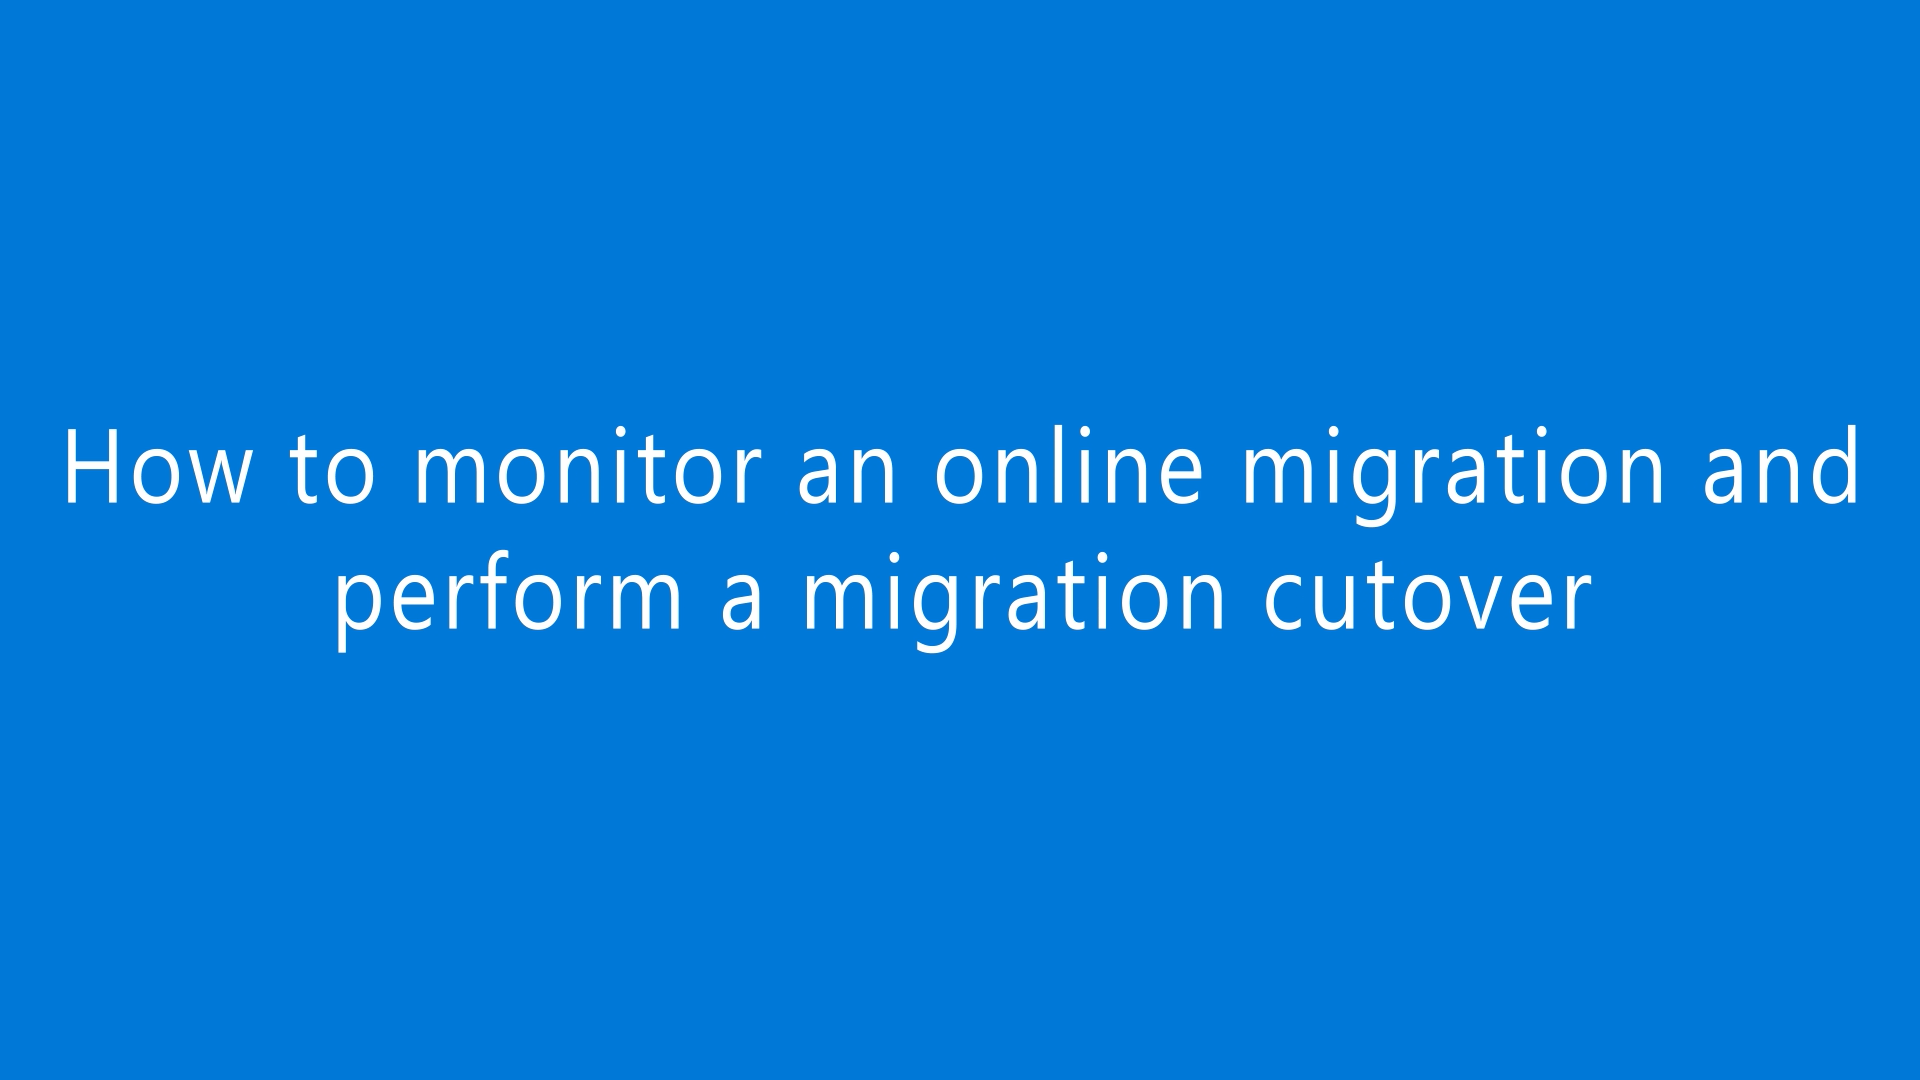 How to monitor an online migration and perform migration cutover